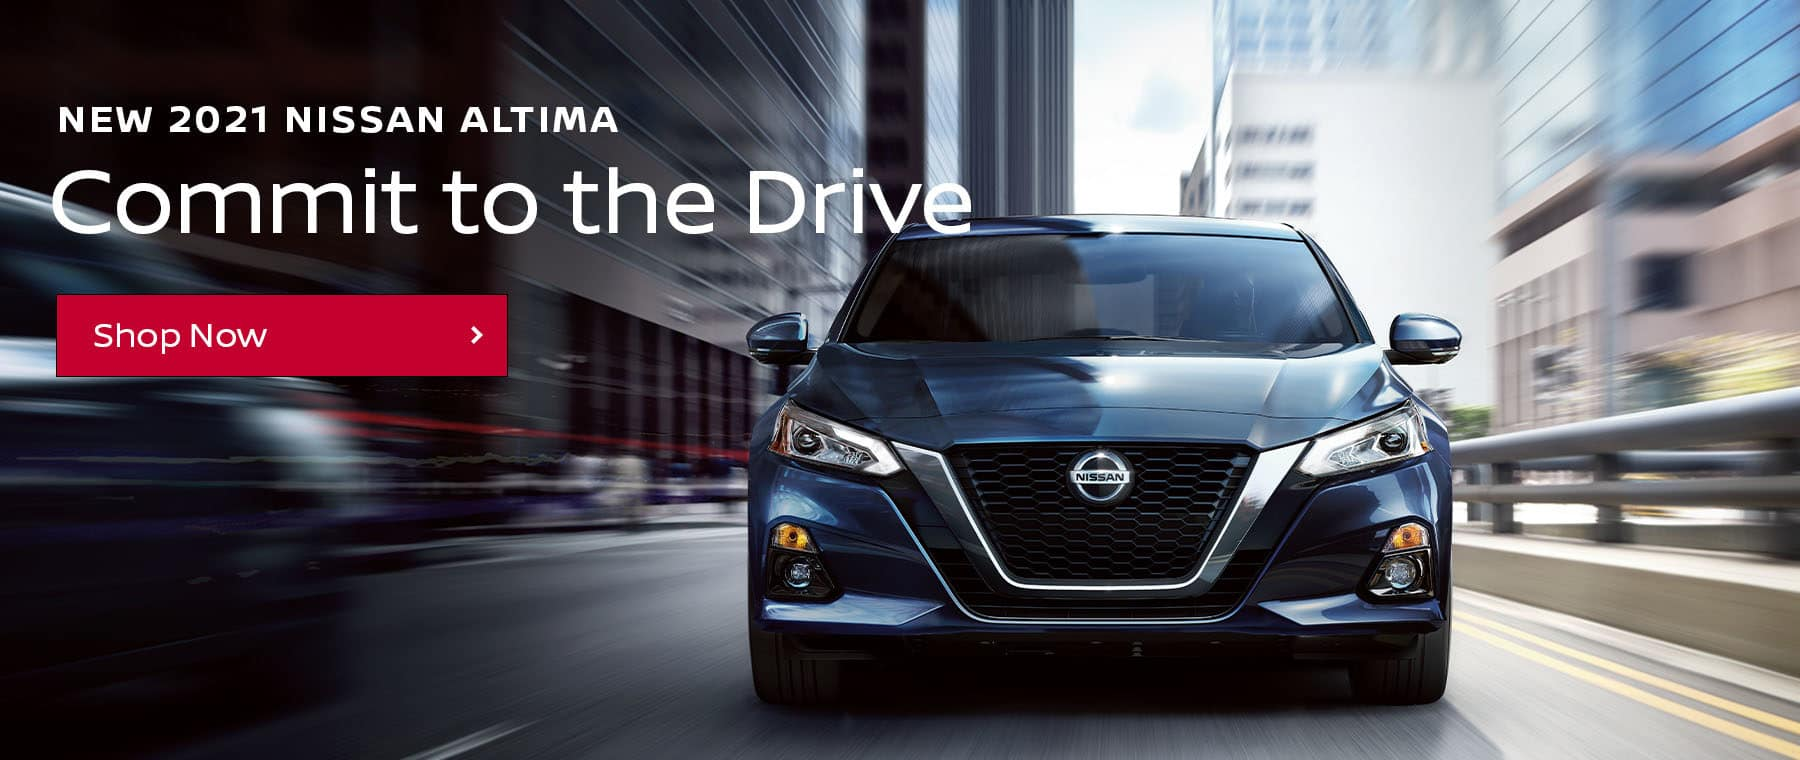 Commit To The Drive In the New Nissan Altima